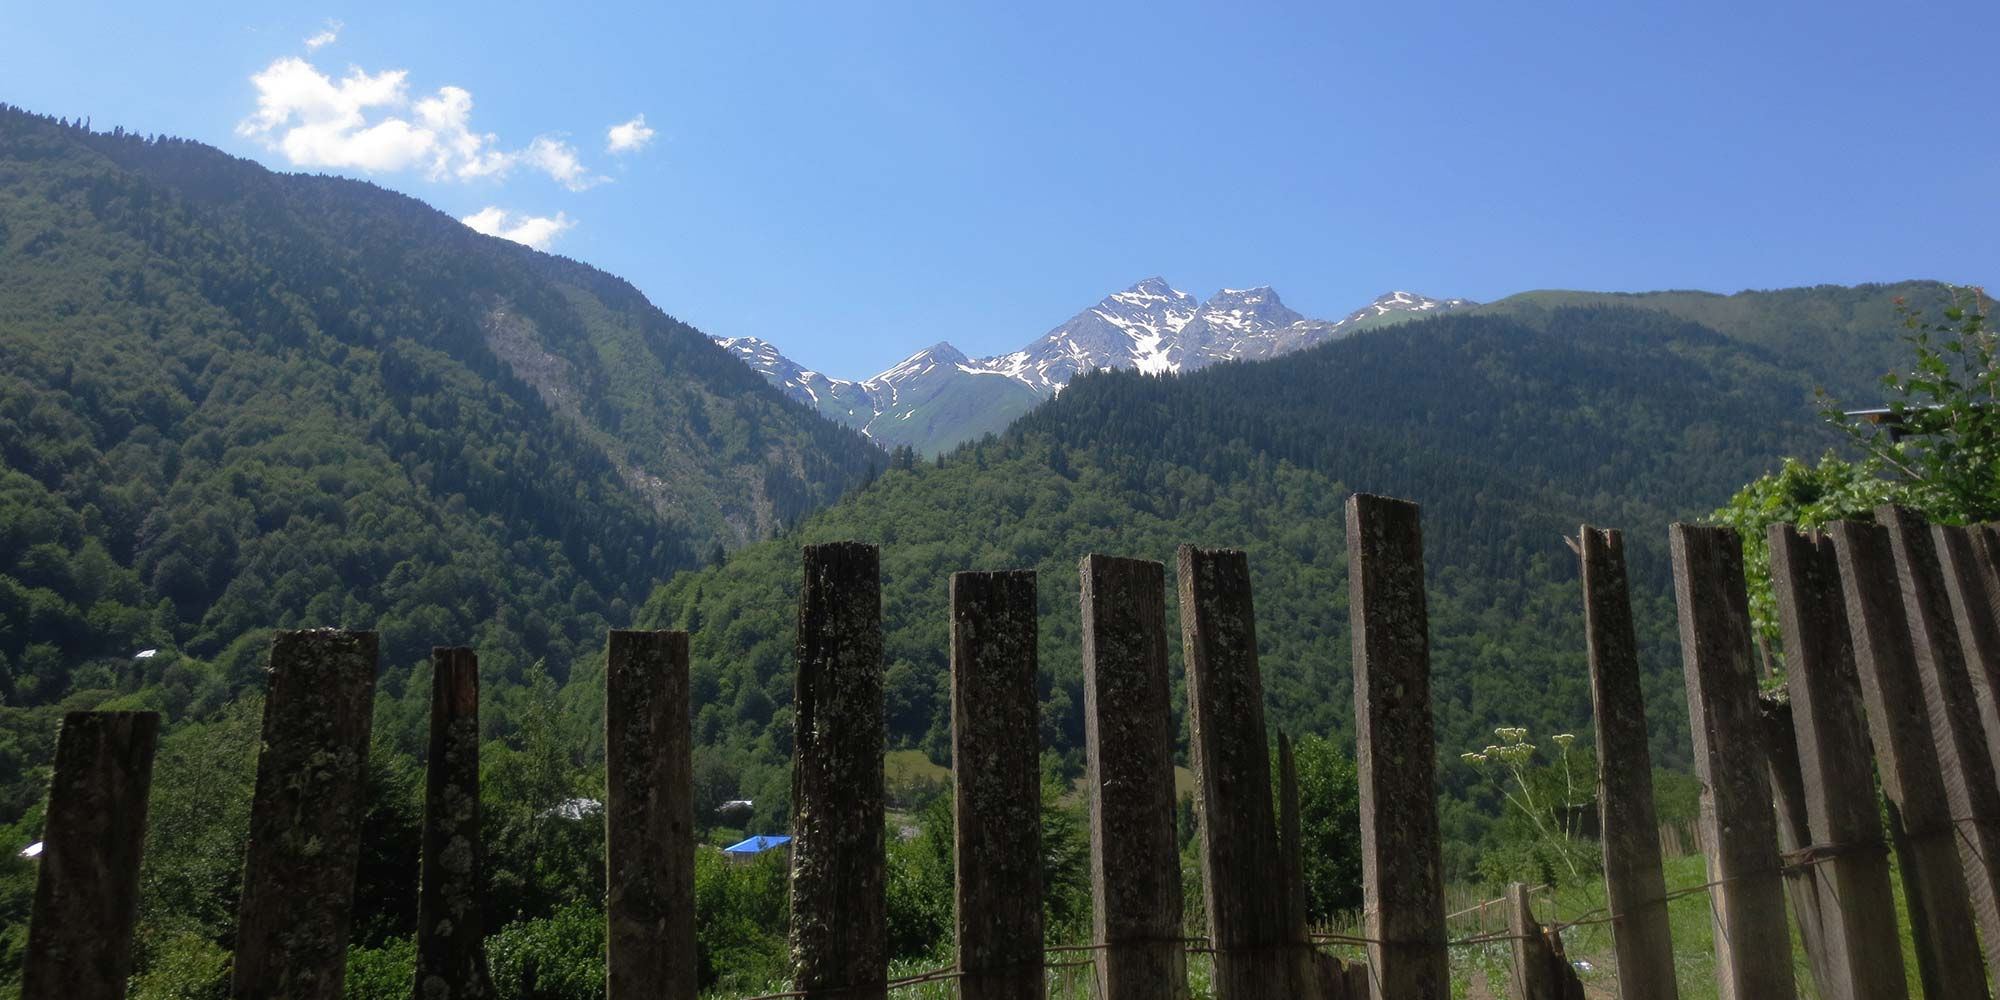 A mountain panorama seen from behind a raggedy wooden fence.